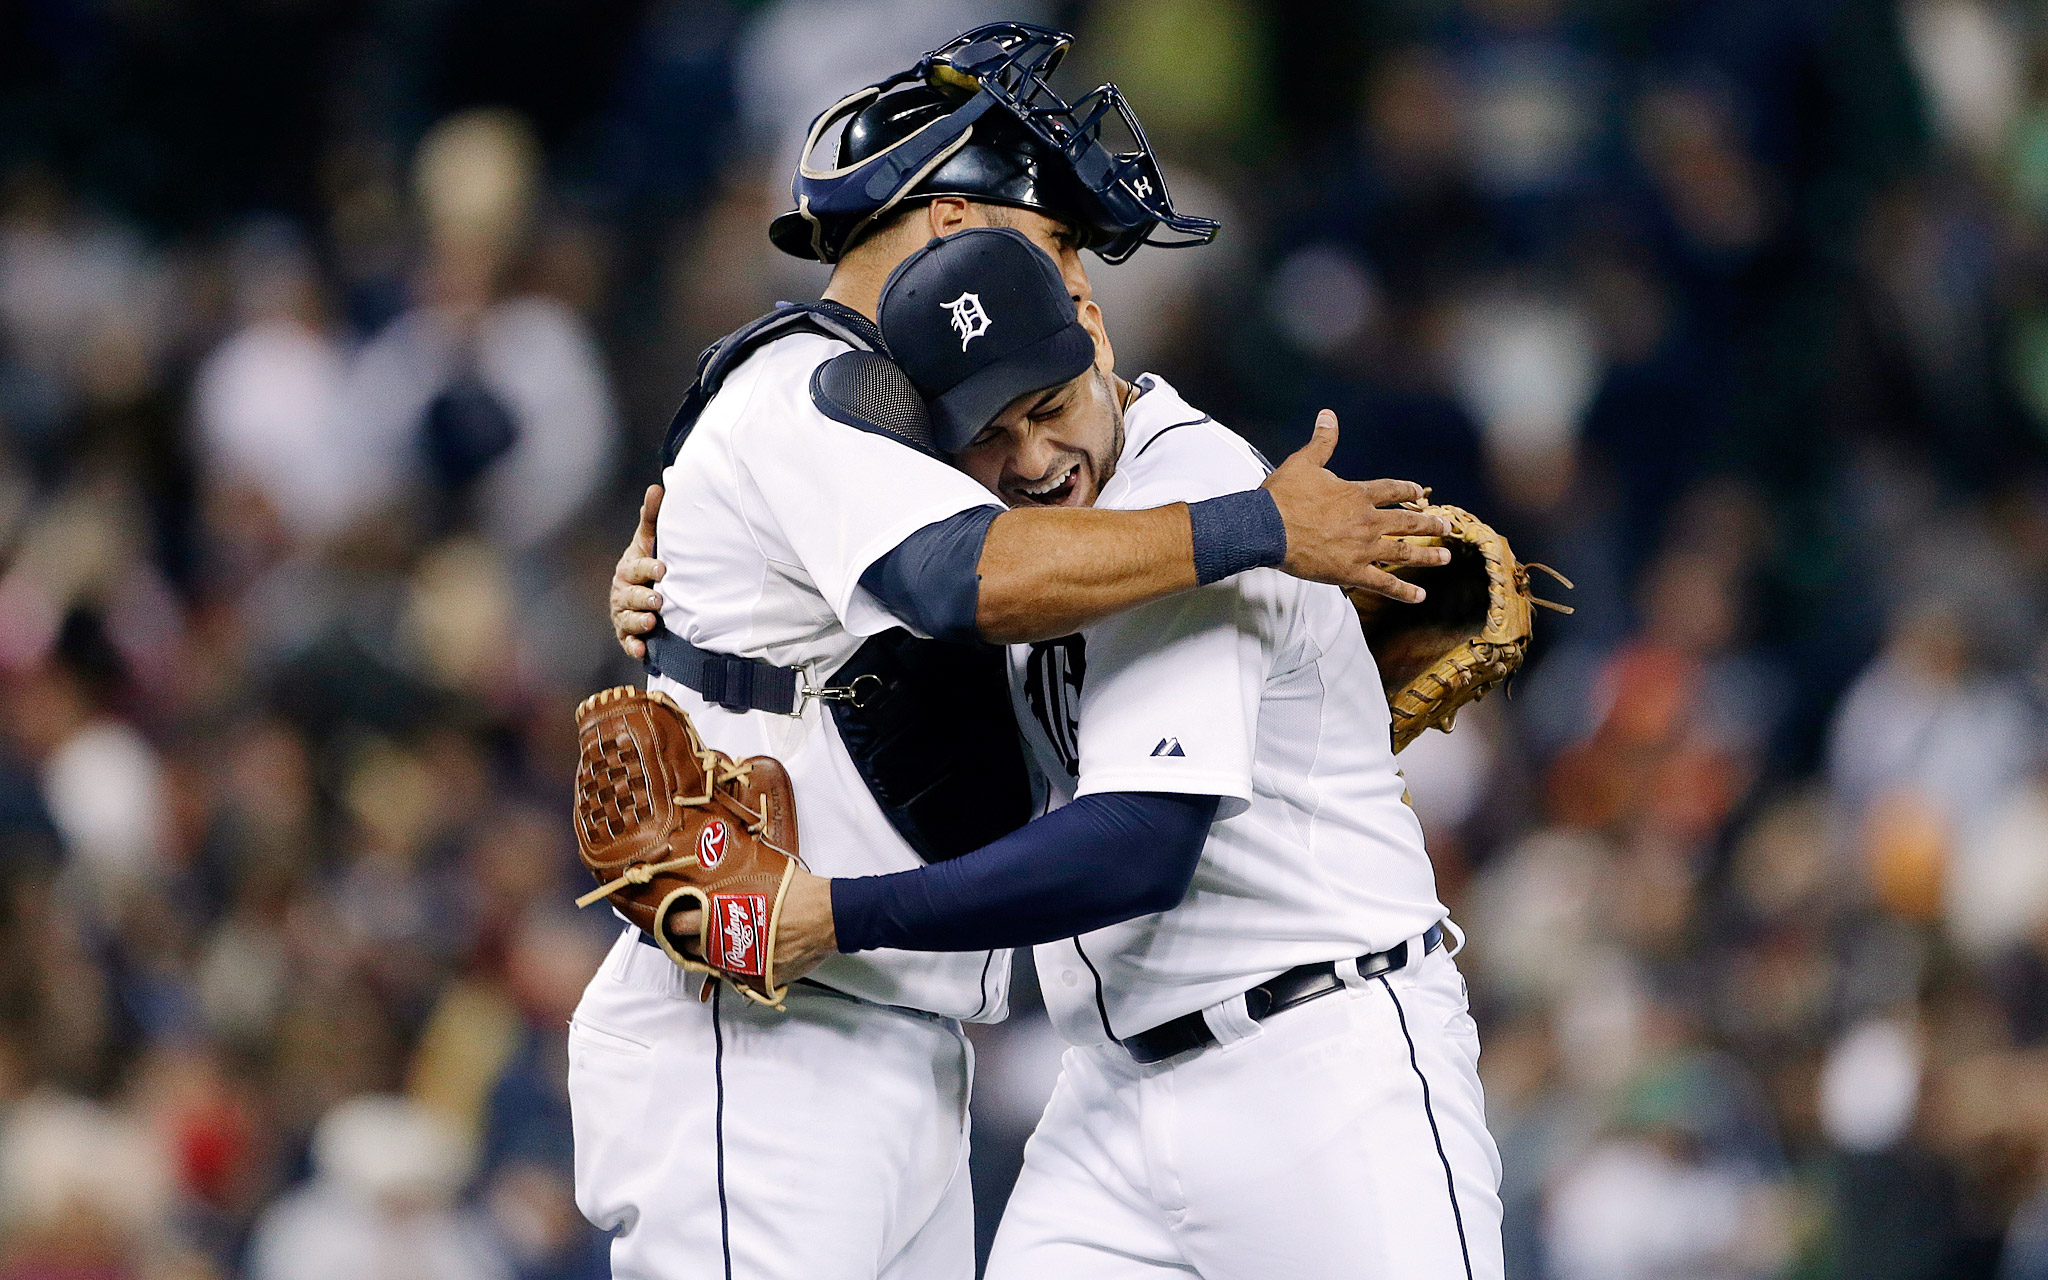 Tigers Top Royals